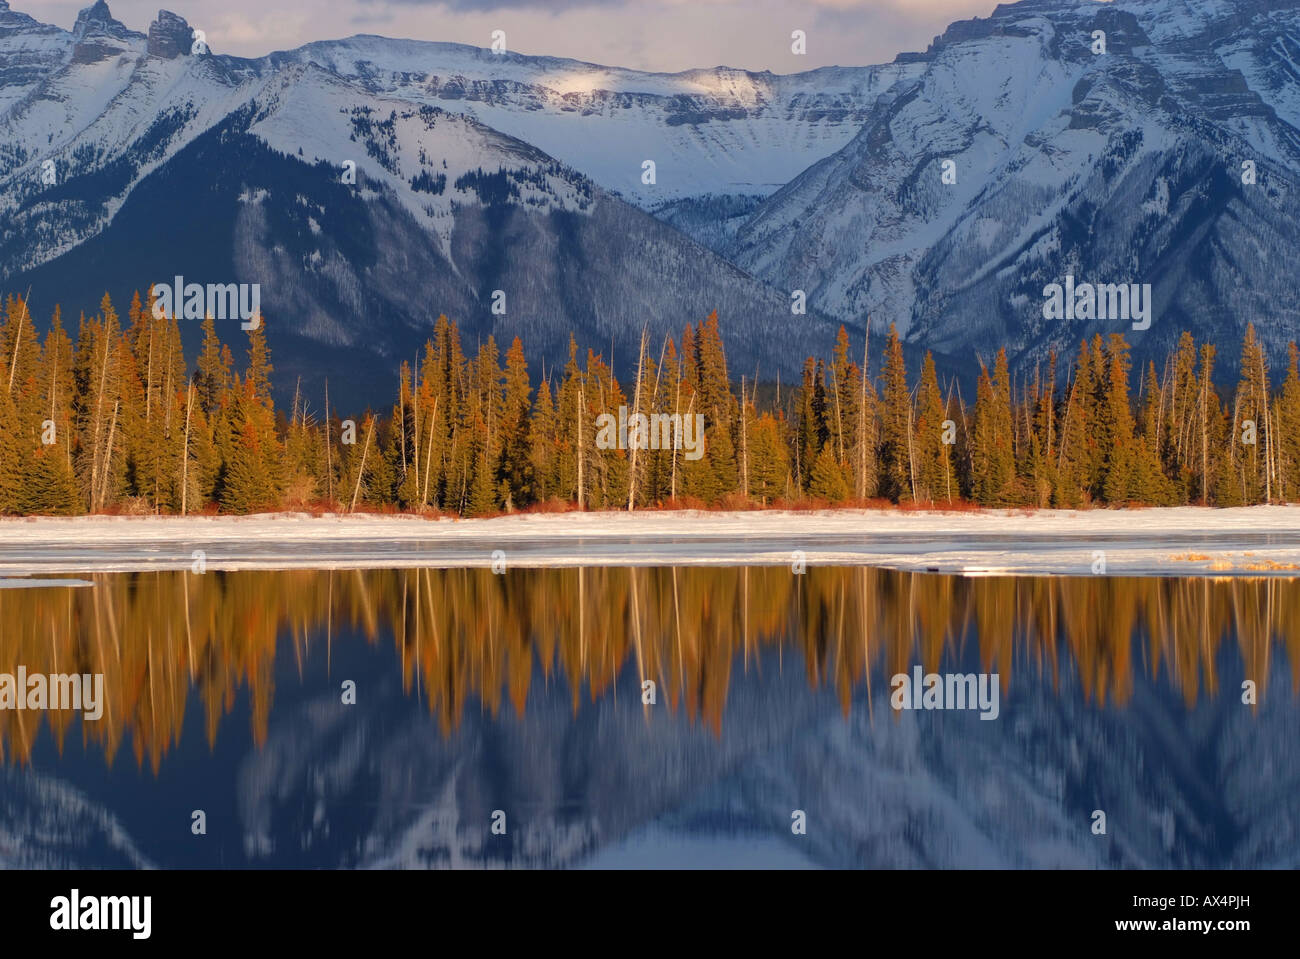 canada-alberta-banff-banff-national-park-view-of-canadian-rockies-AX4PJH.jpg